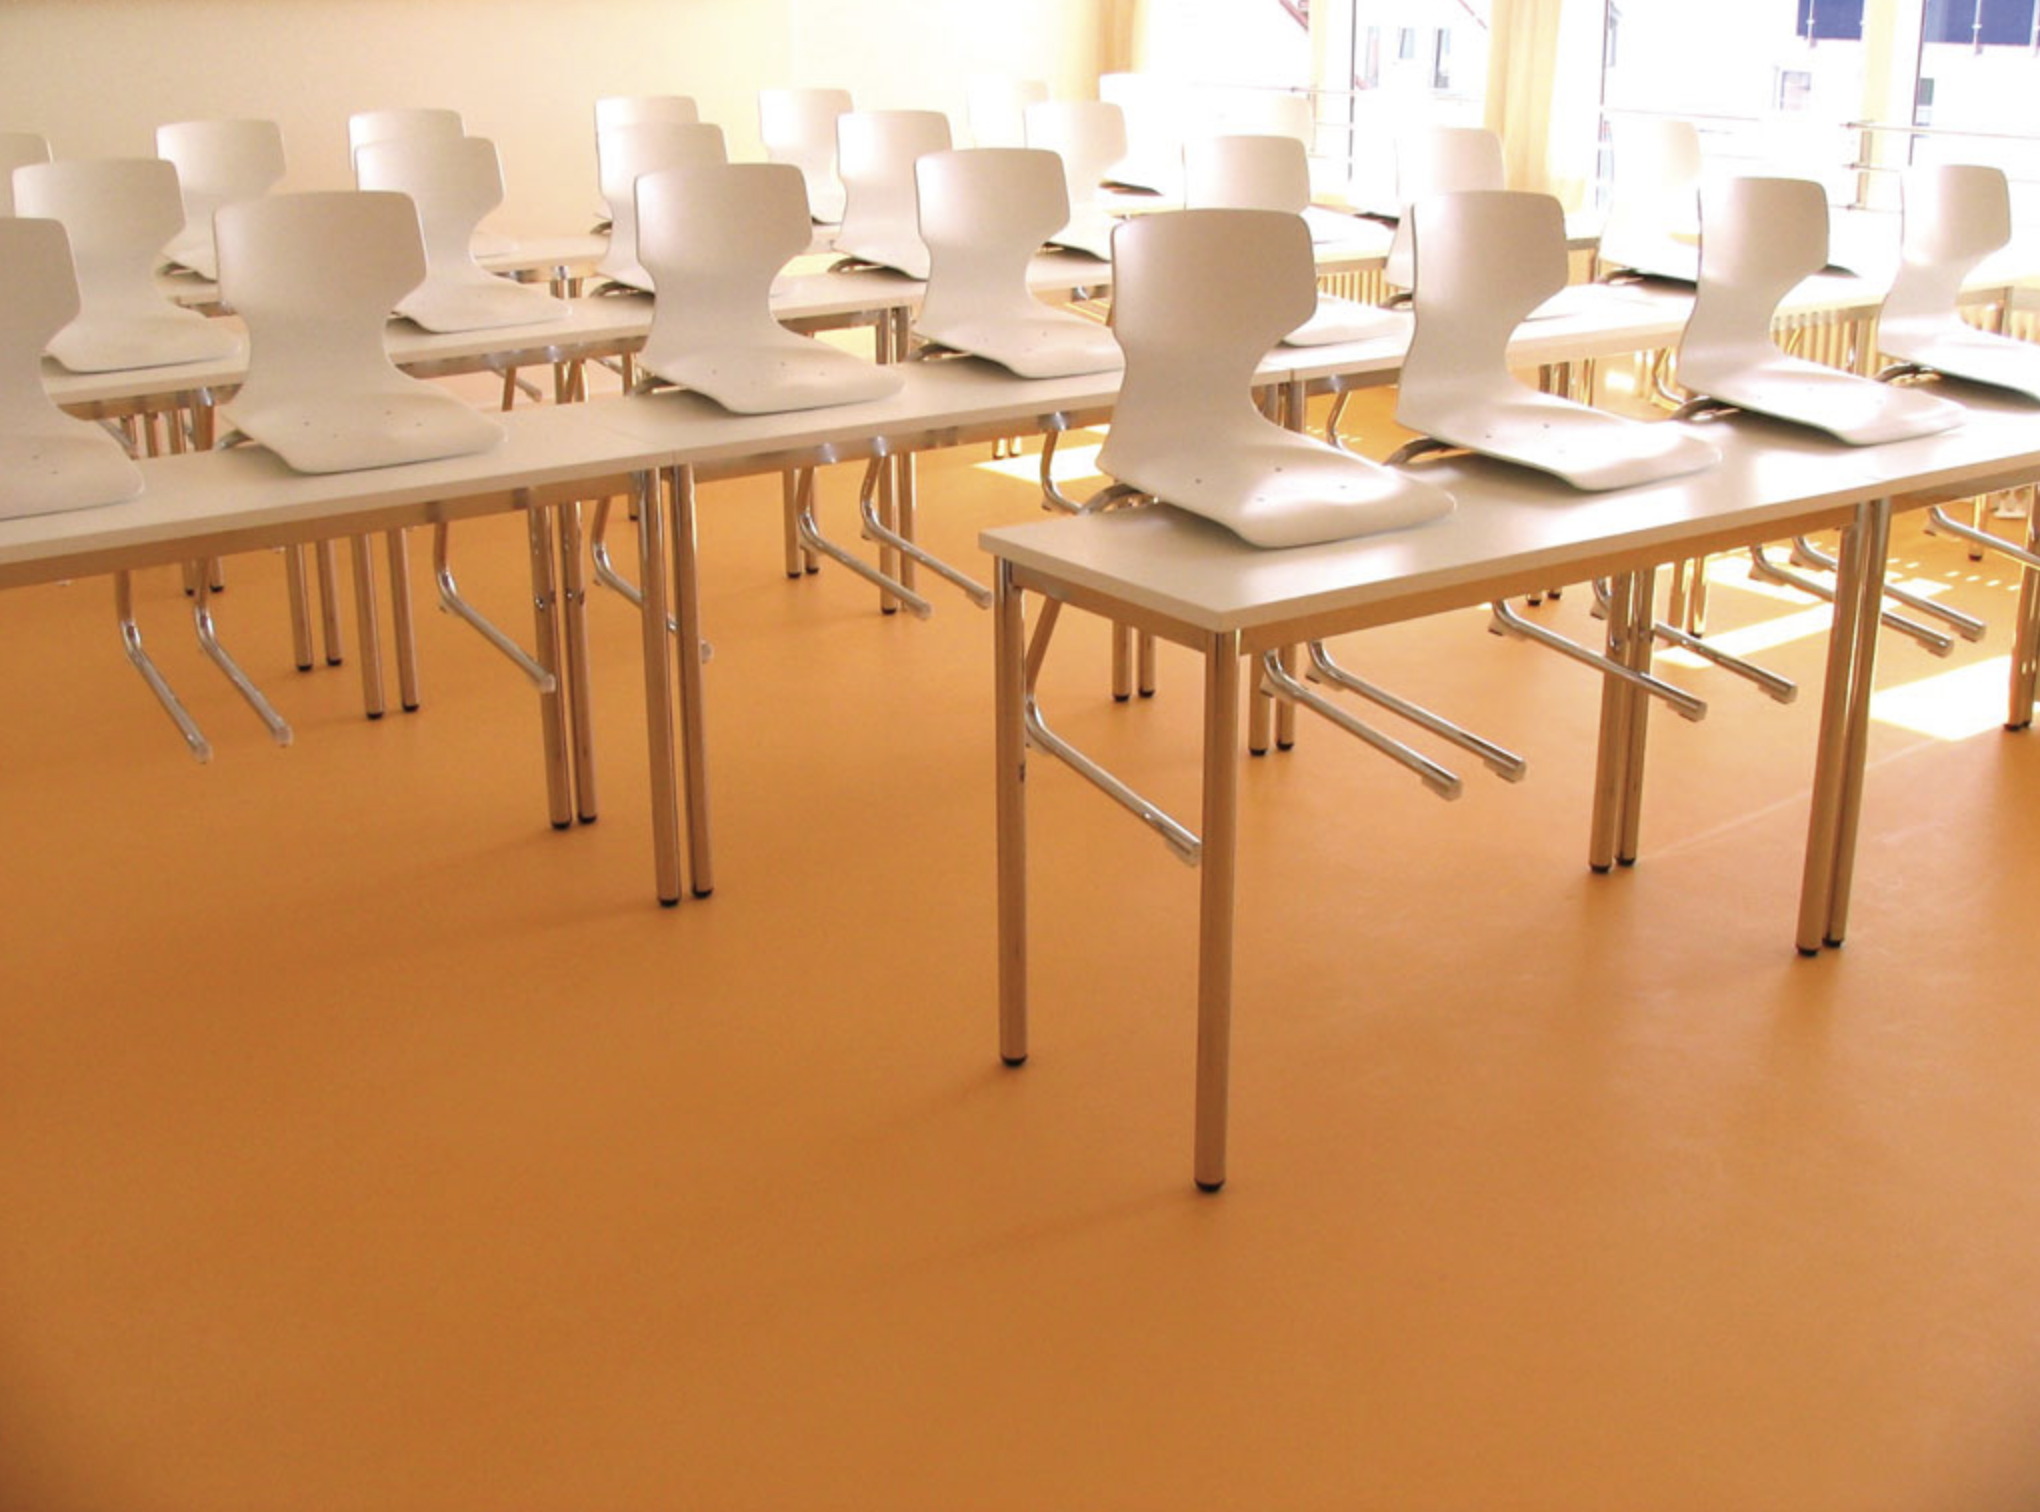 Dalsouple rubber tiles are ideal for home and contract interiors